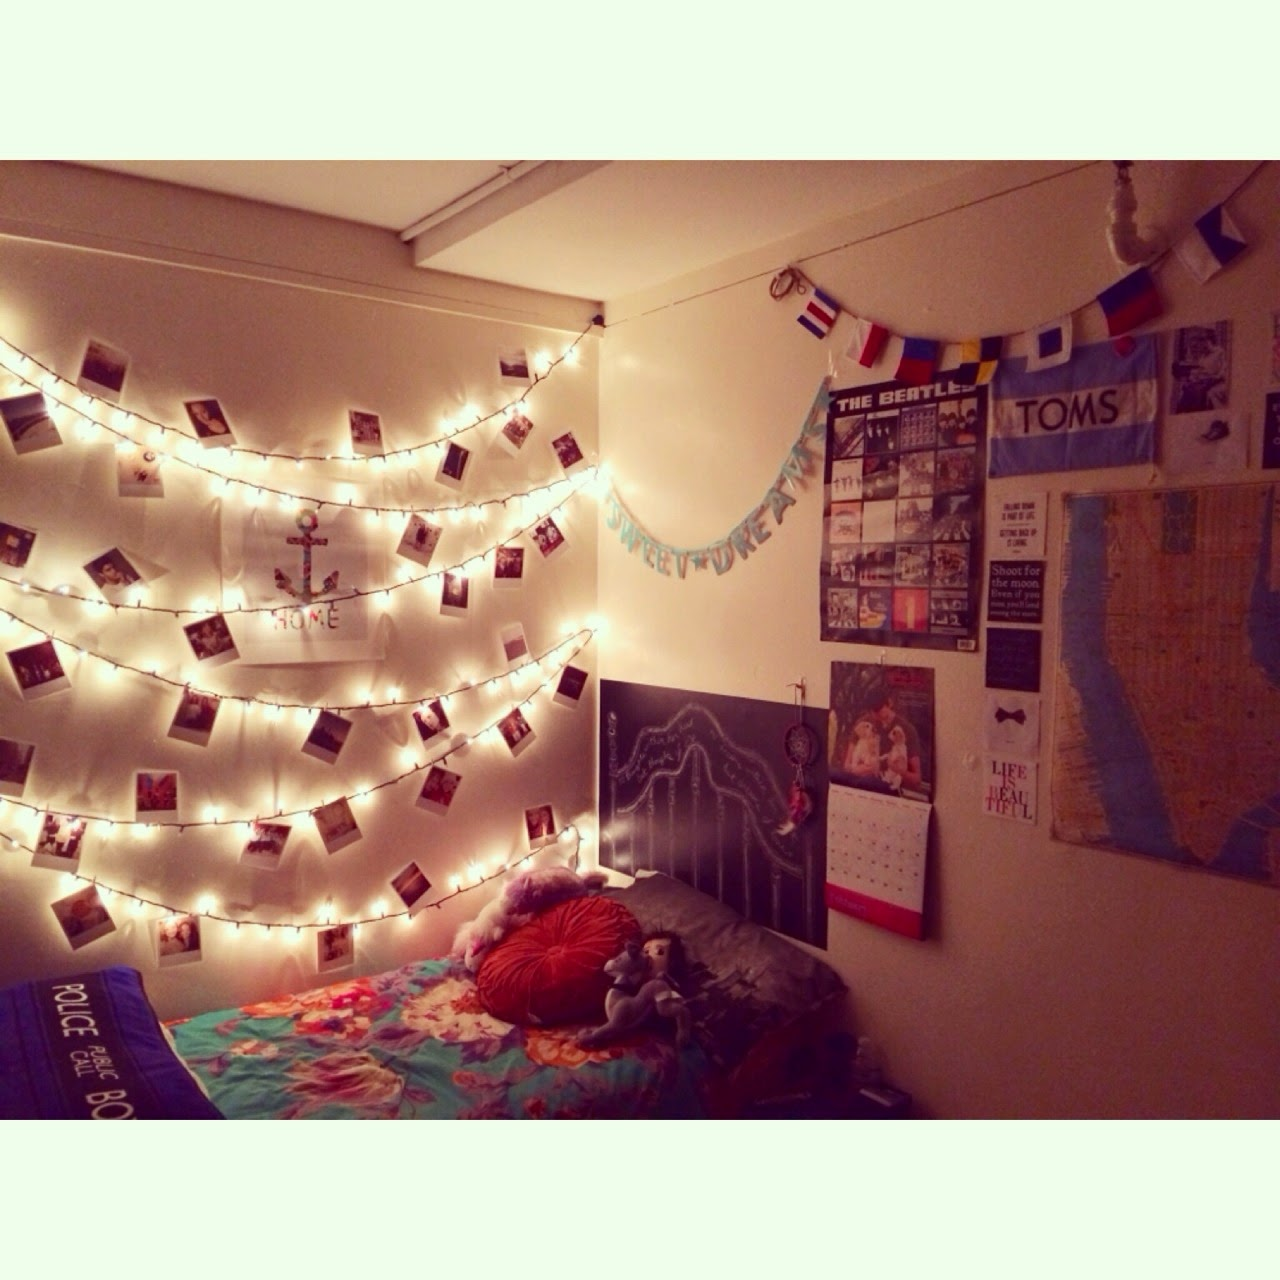 5 Quick And Easy Ways To Update Your College Dorm Room